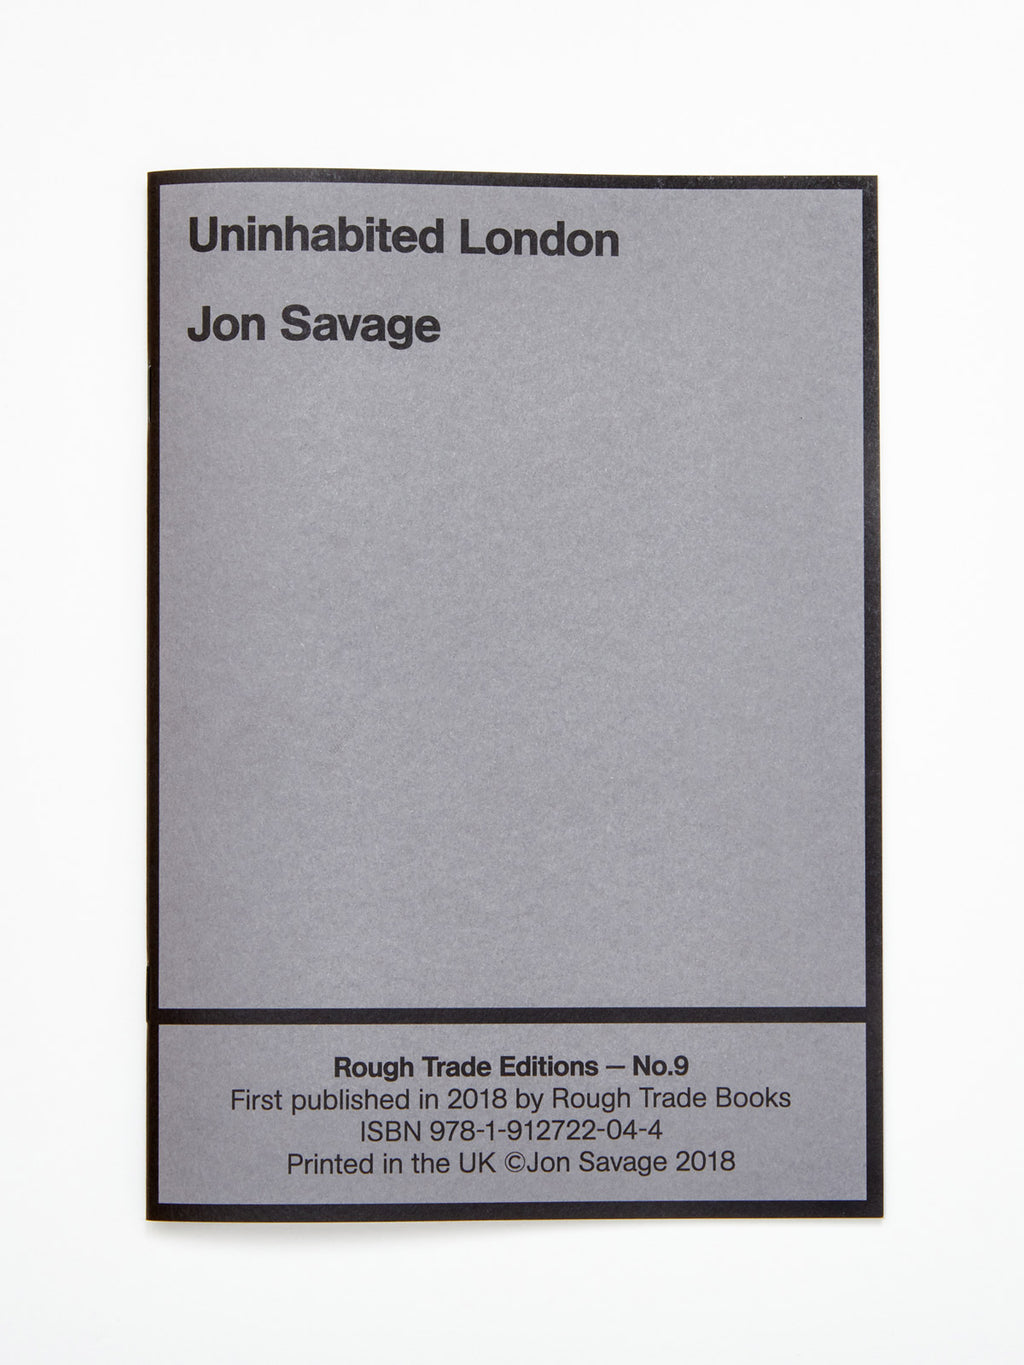 Jon Savage - Uninhabited London